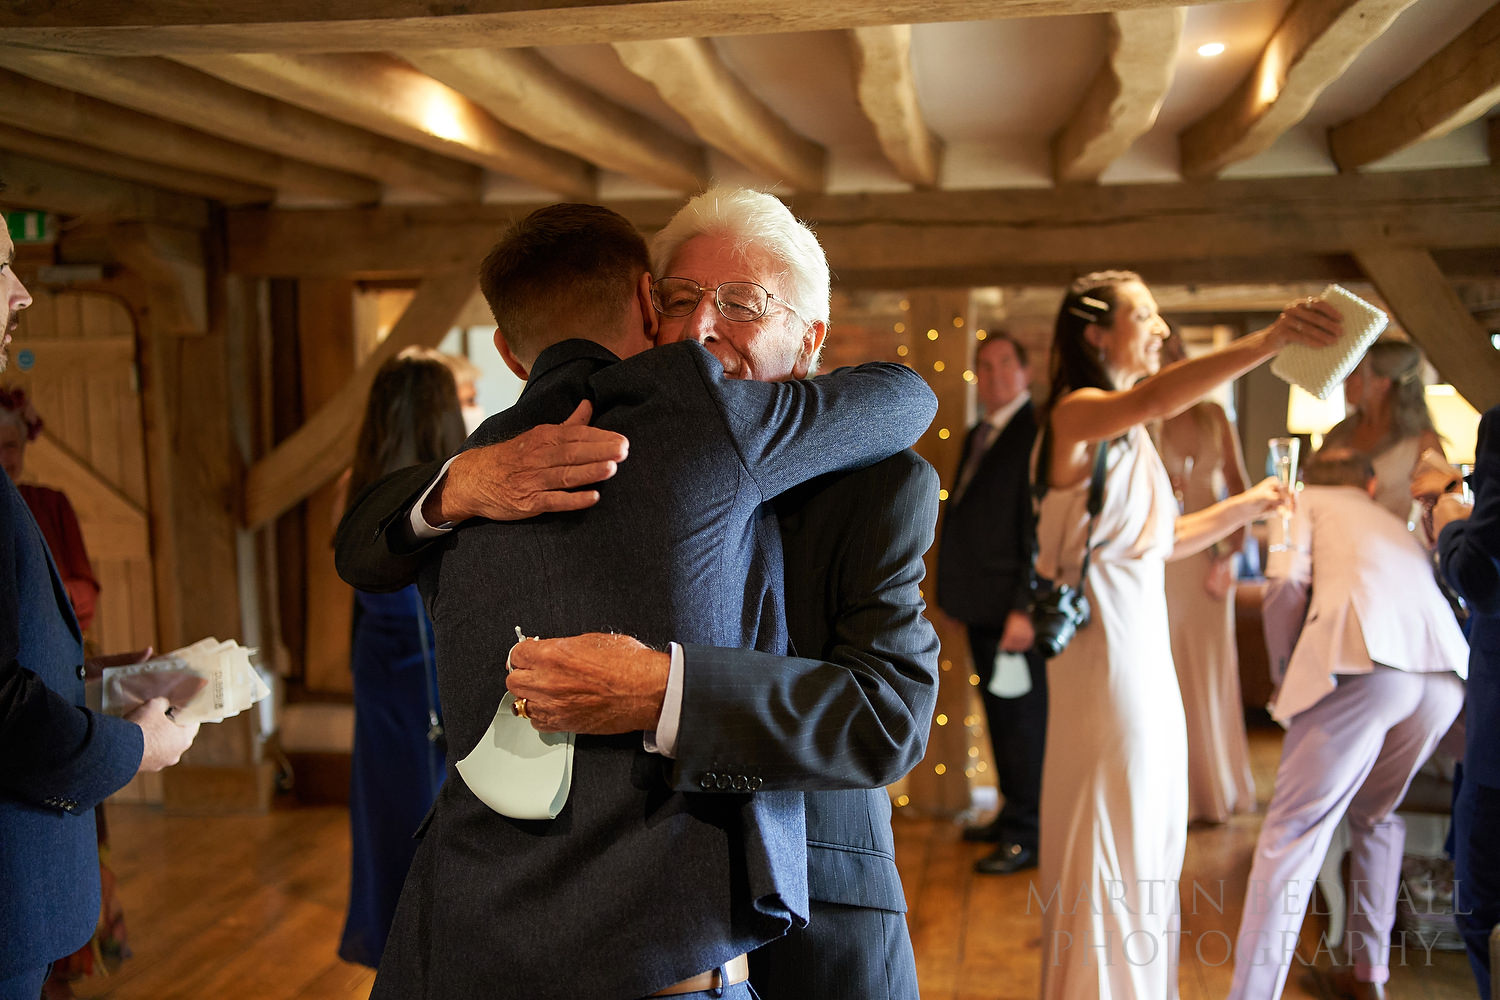 Groom gets a hug from his father before the wedding ceremony